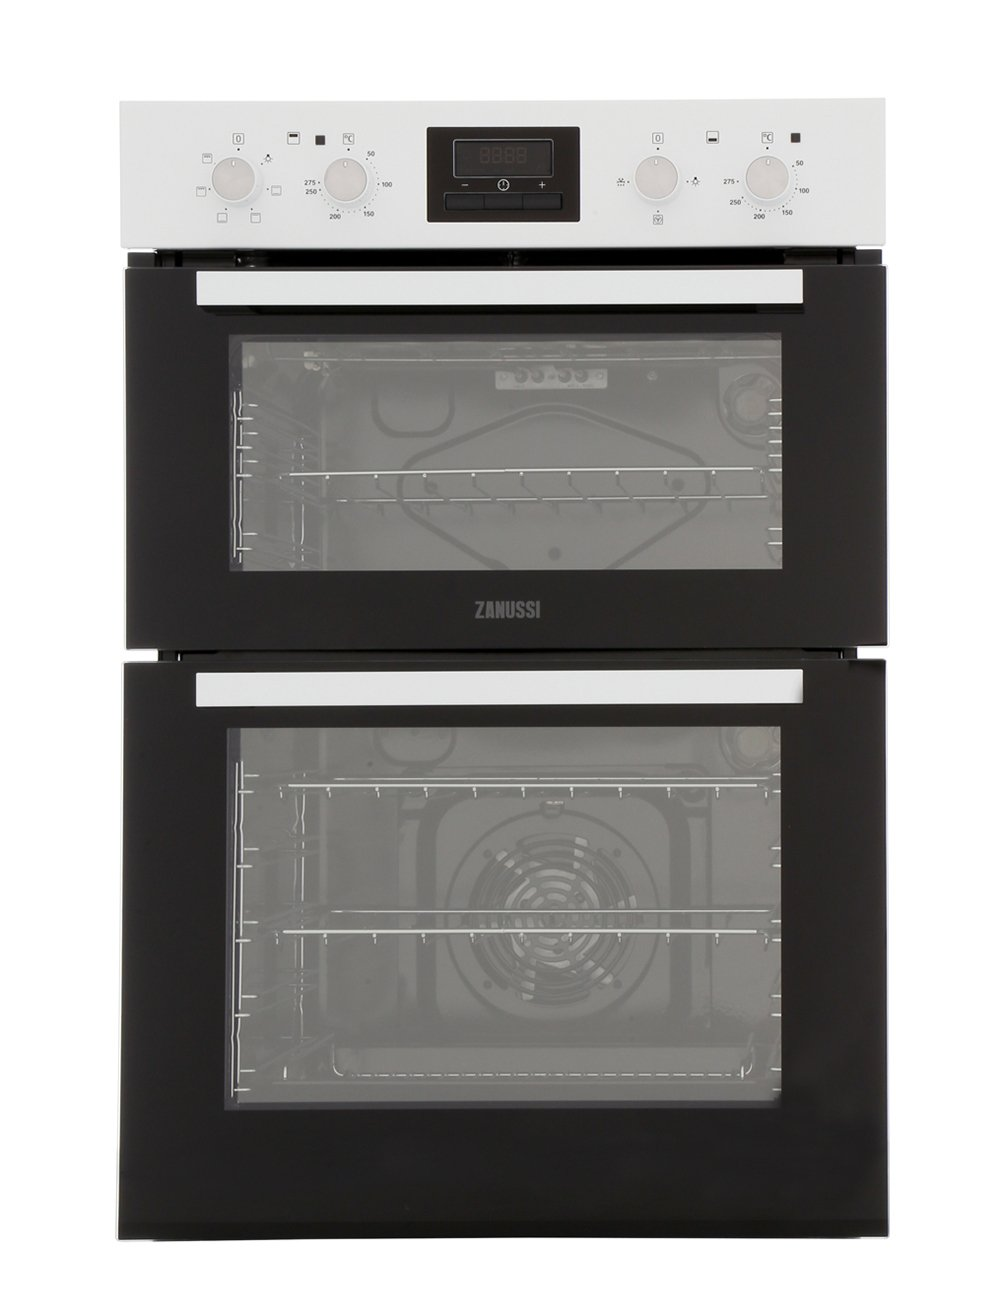 Zanussi ZOD35661WK Double Built In Electric Oven